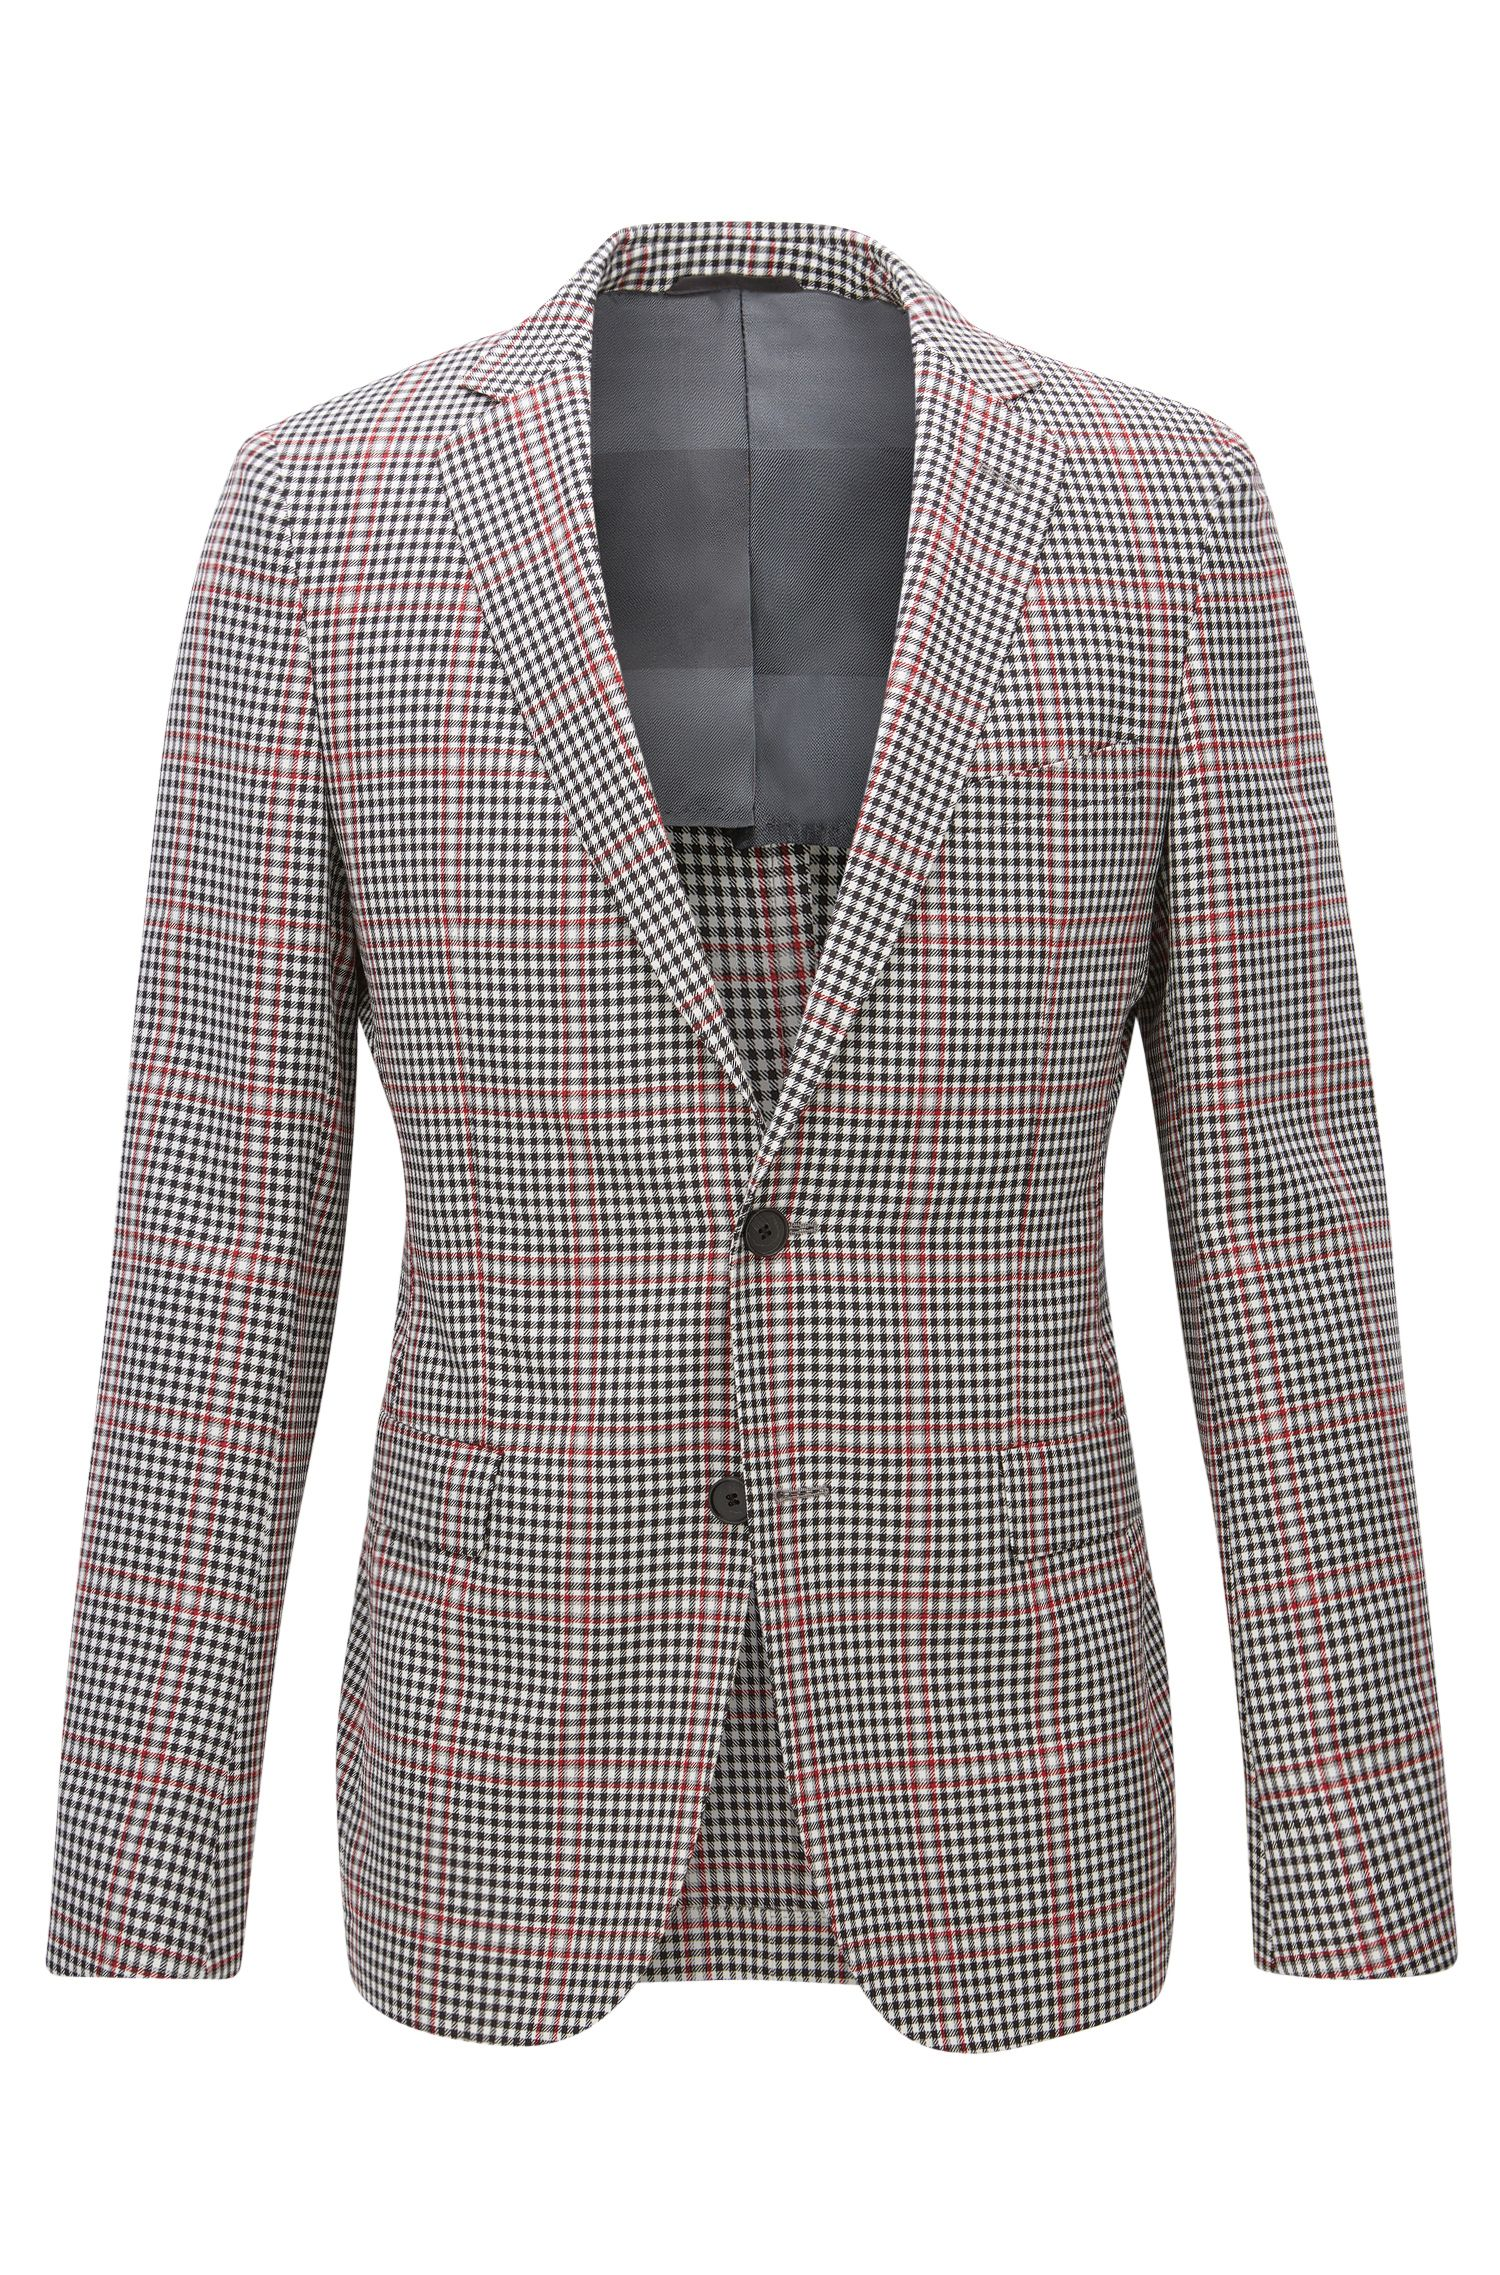 Windowpane Virgin Wool Sport Coat, Extra Slim Fit | Roan, Open Grey